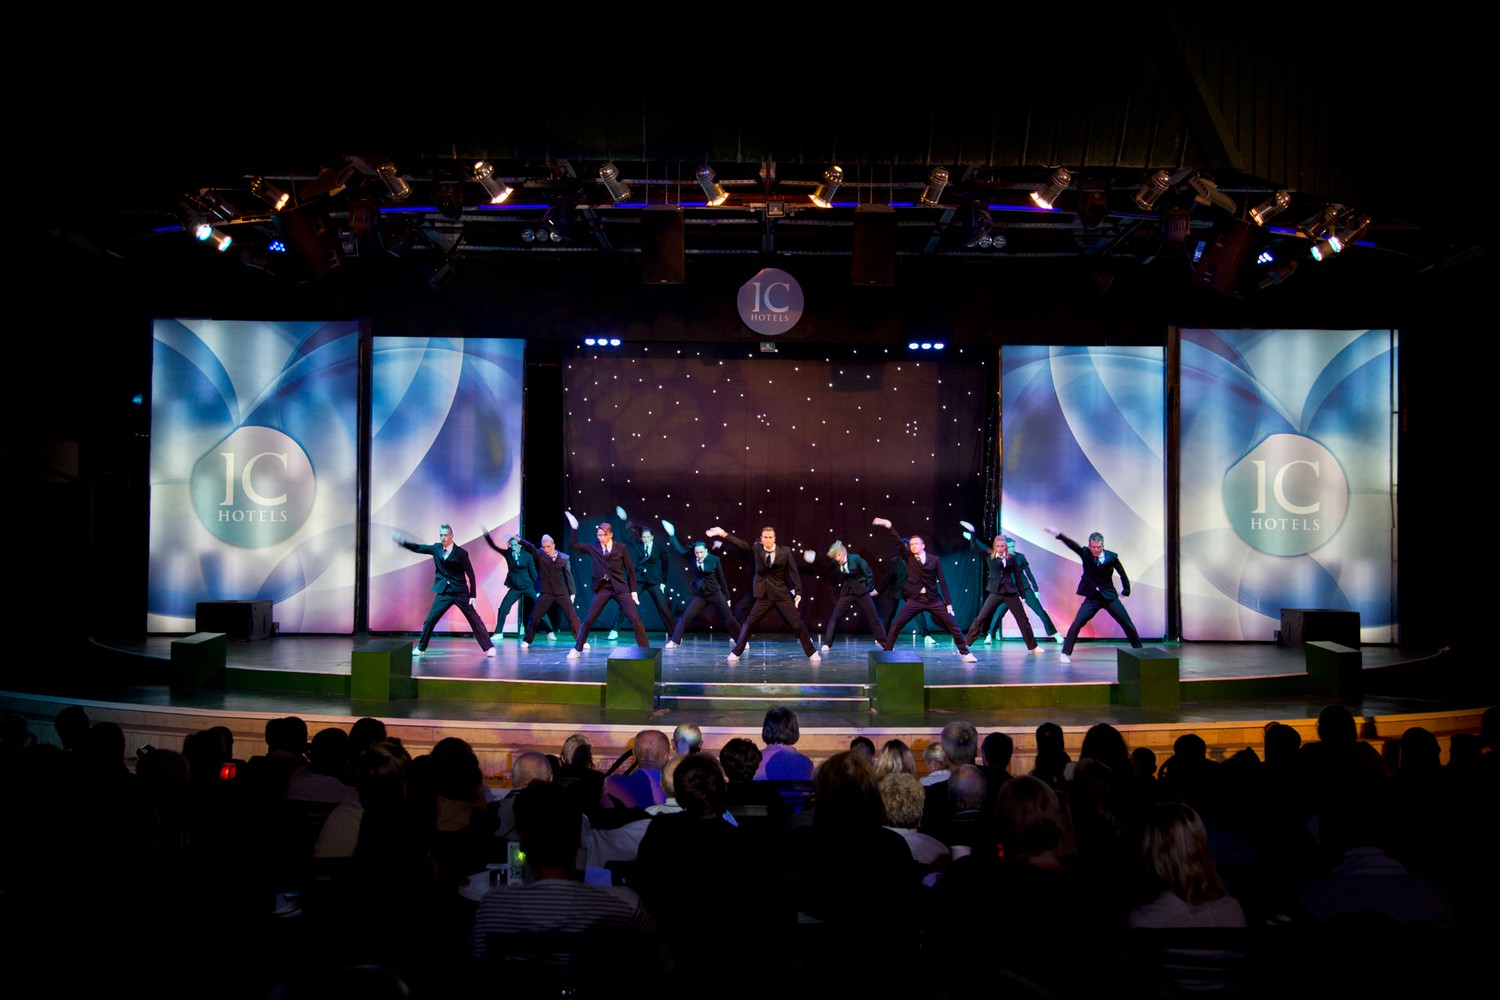 ic_hotels_green_palace_evening_show_9.jpg